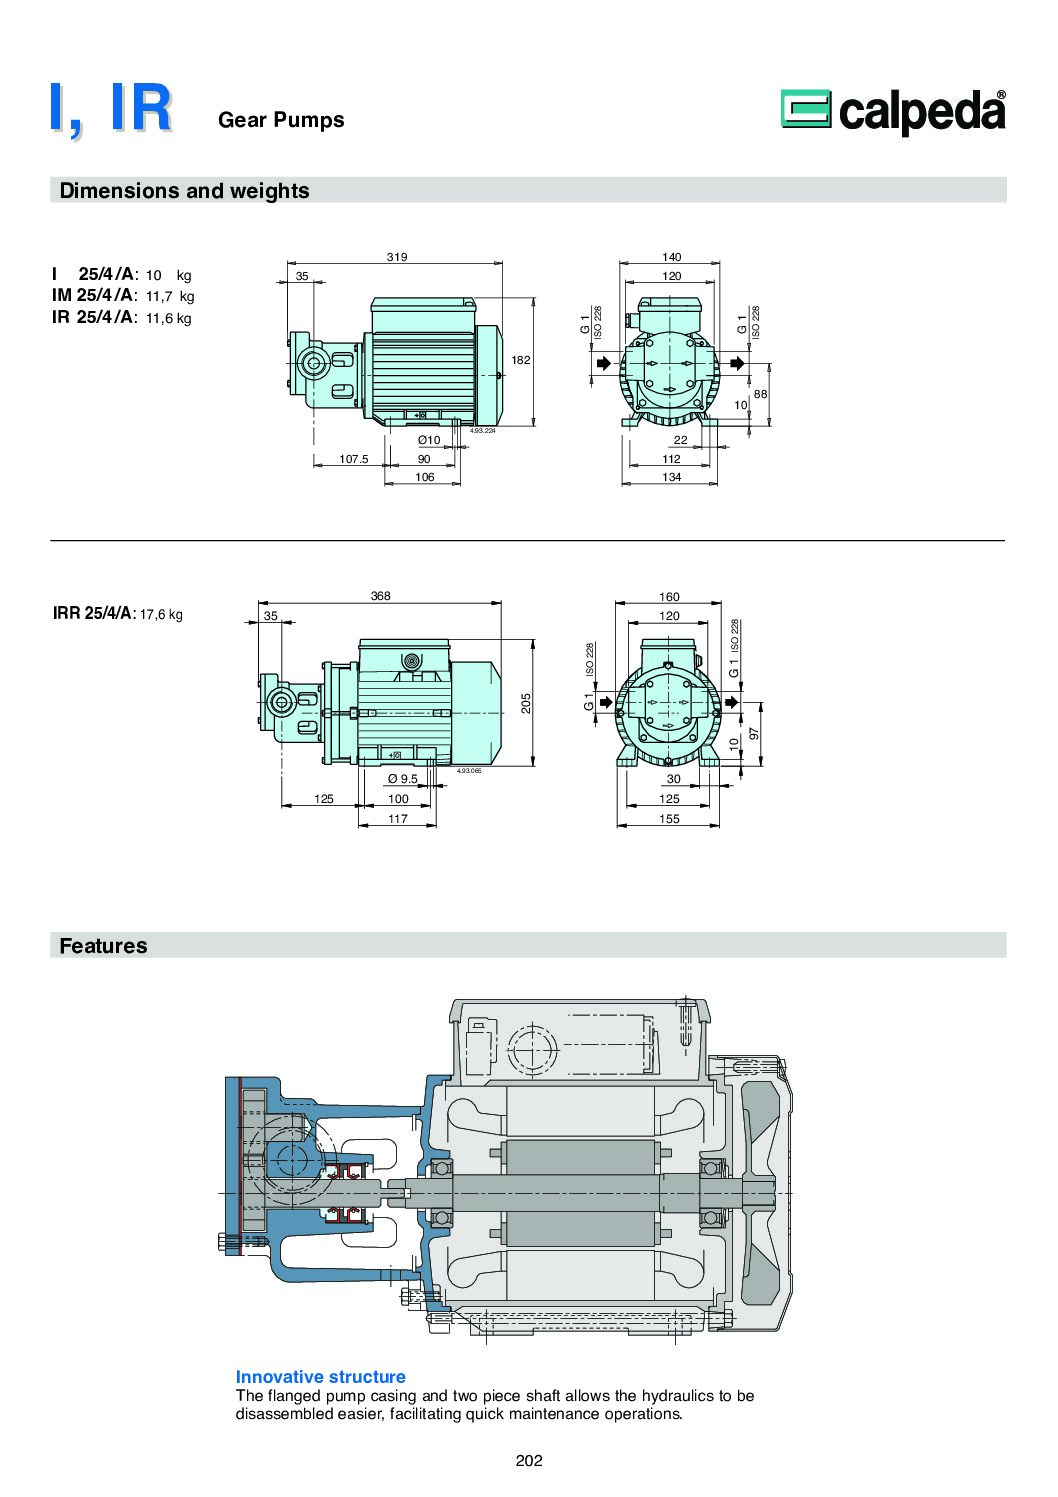 IR gear pumps DIMENSIONS